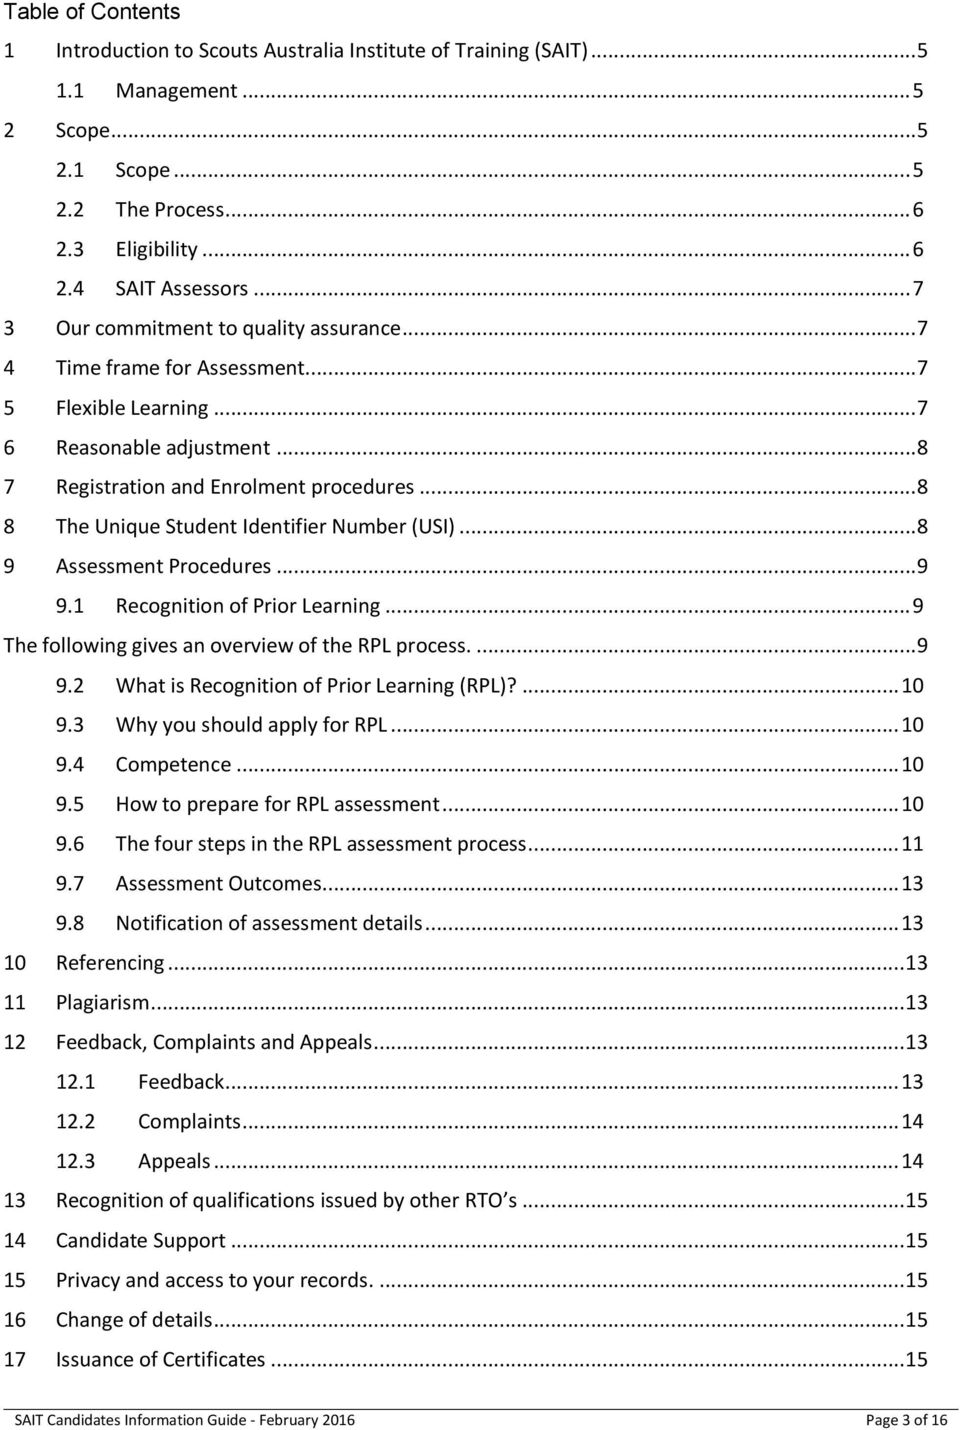 .. 8 8 The Unique Student Identifier Number (USI)... 8 9 Assessment Procedures... 9 9.1 Recognition of Prior Learning... 9 The following gives an overview of the RPL process.... 9 9.2 What is Recognition of Prior Learning (RPL)?